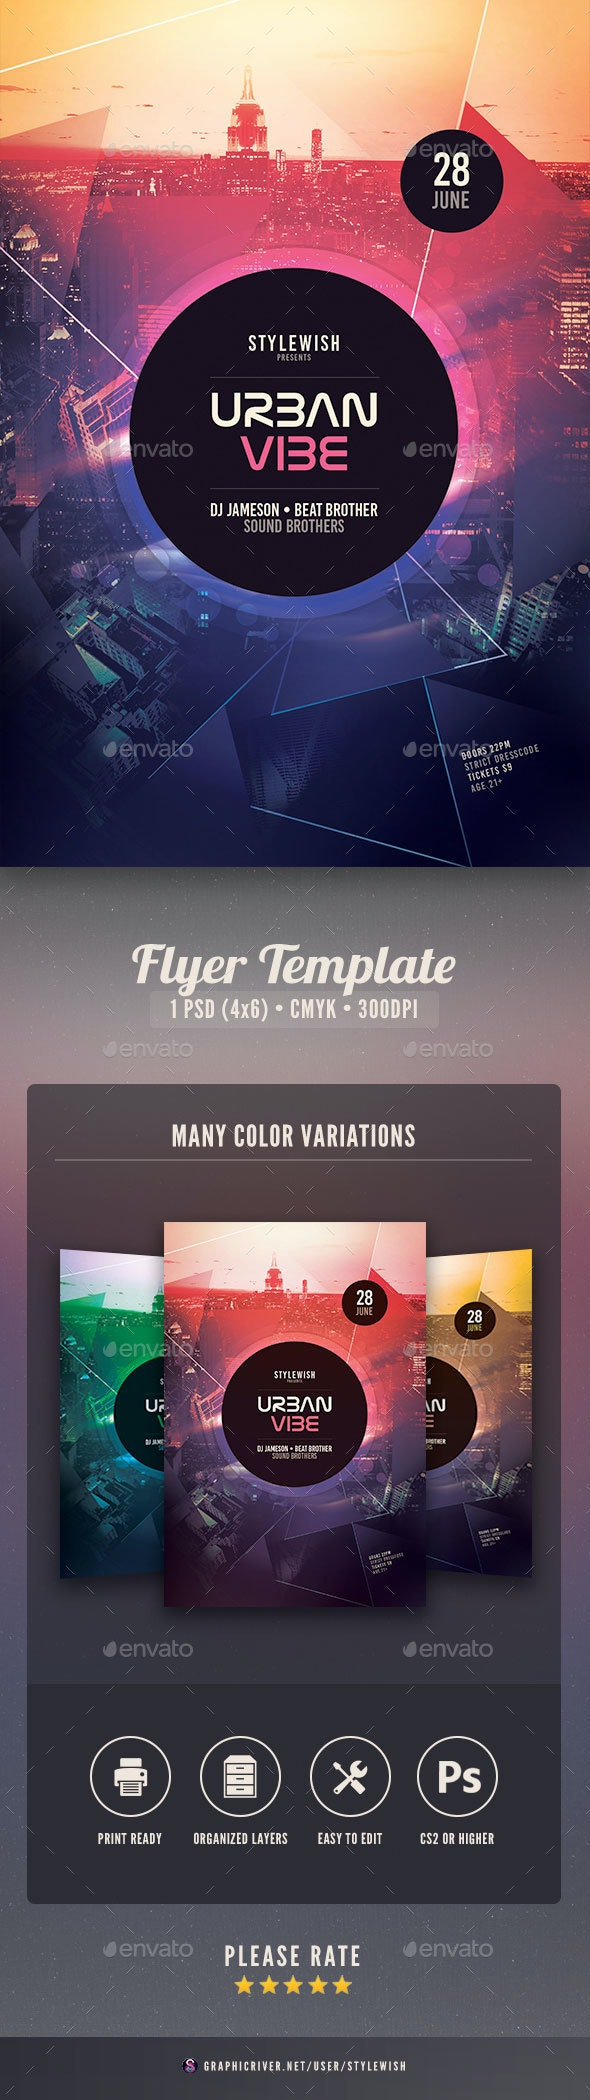 Urban Vibe Flyer - Clubs & Parties Events